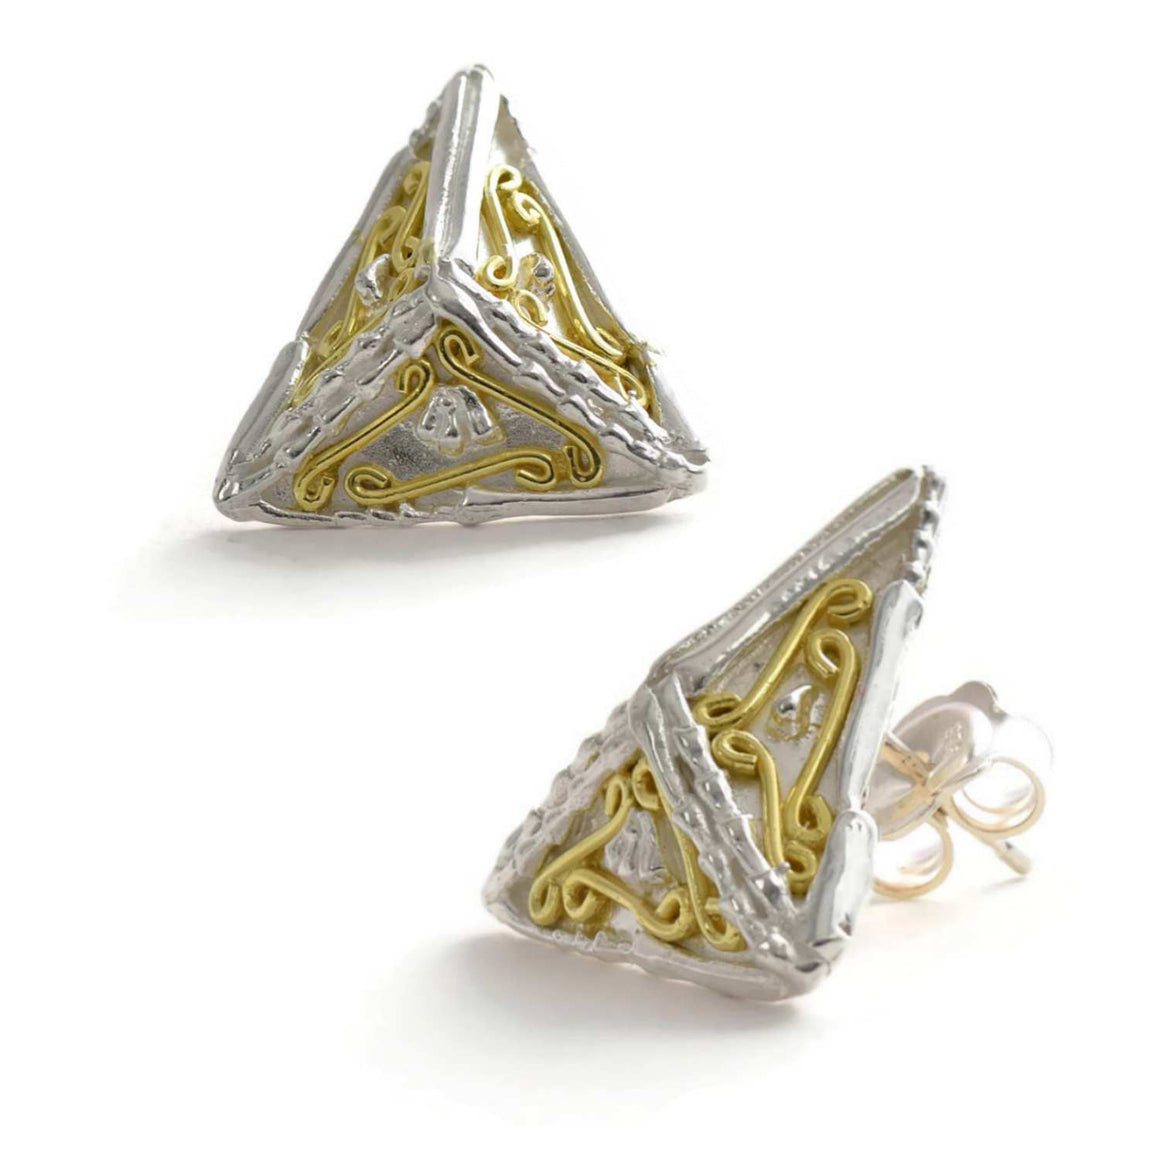 18ct gold and silver patterned 3D triangle stud earrings, geometrical designs